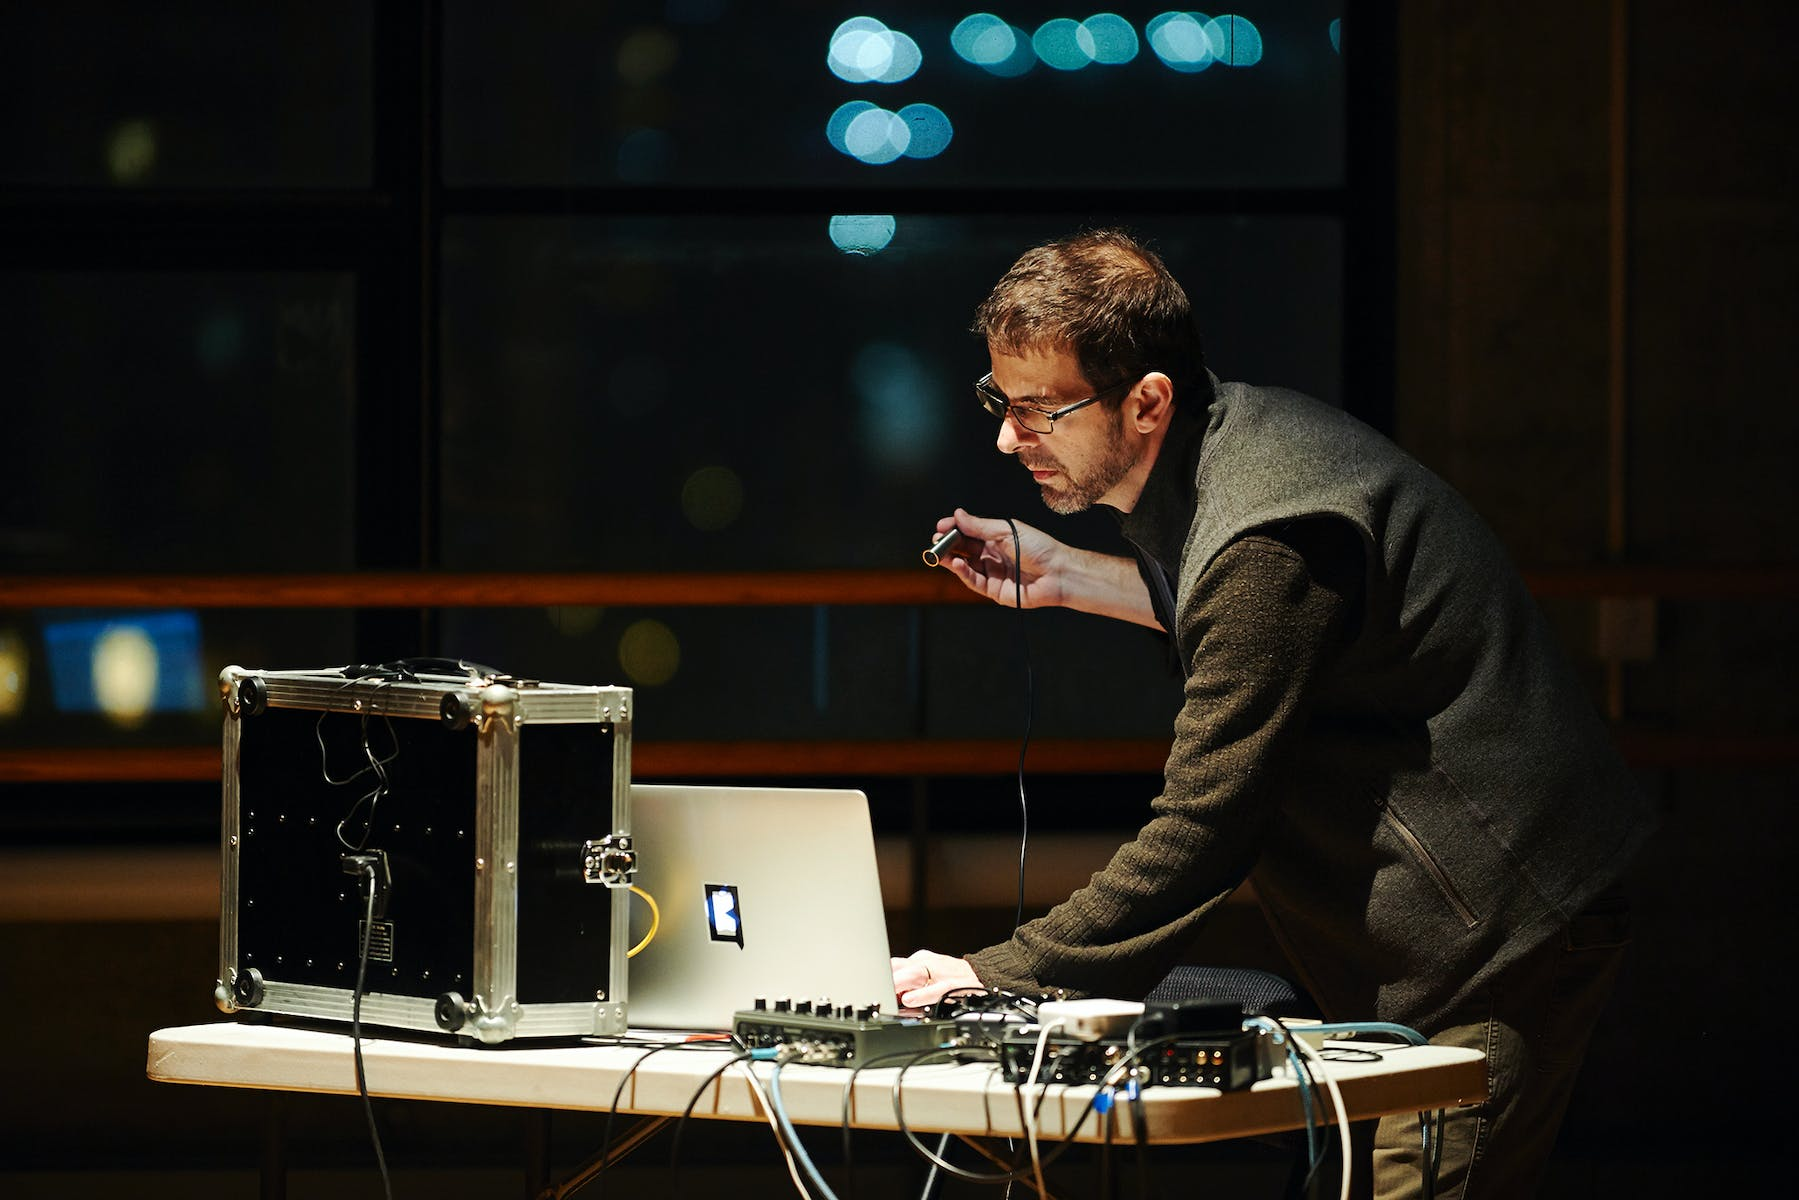 Man standing at laptop with many electric connections.